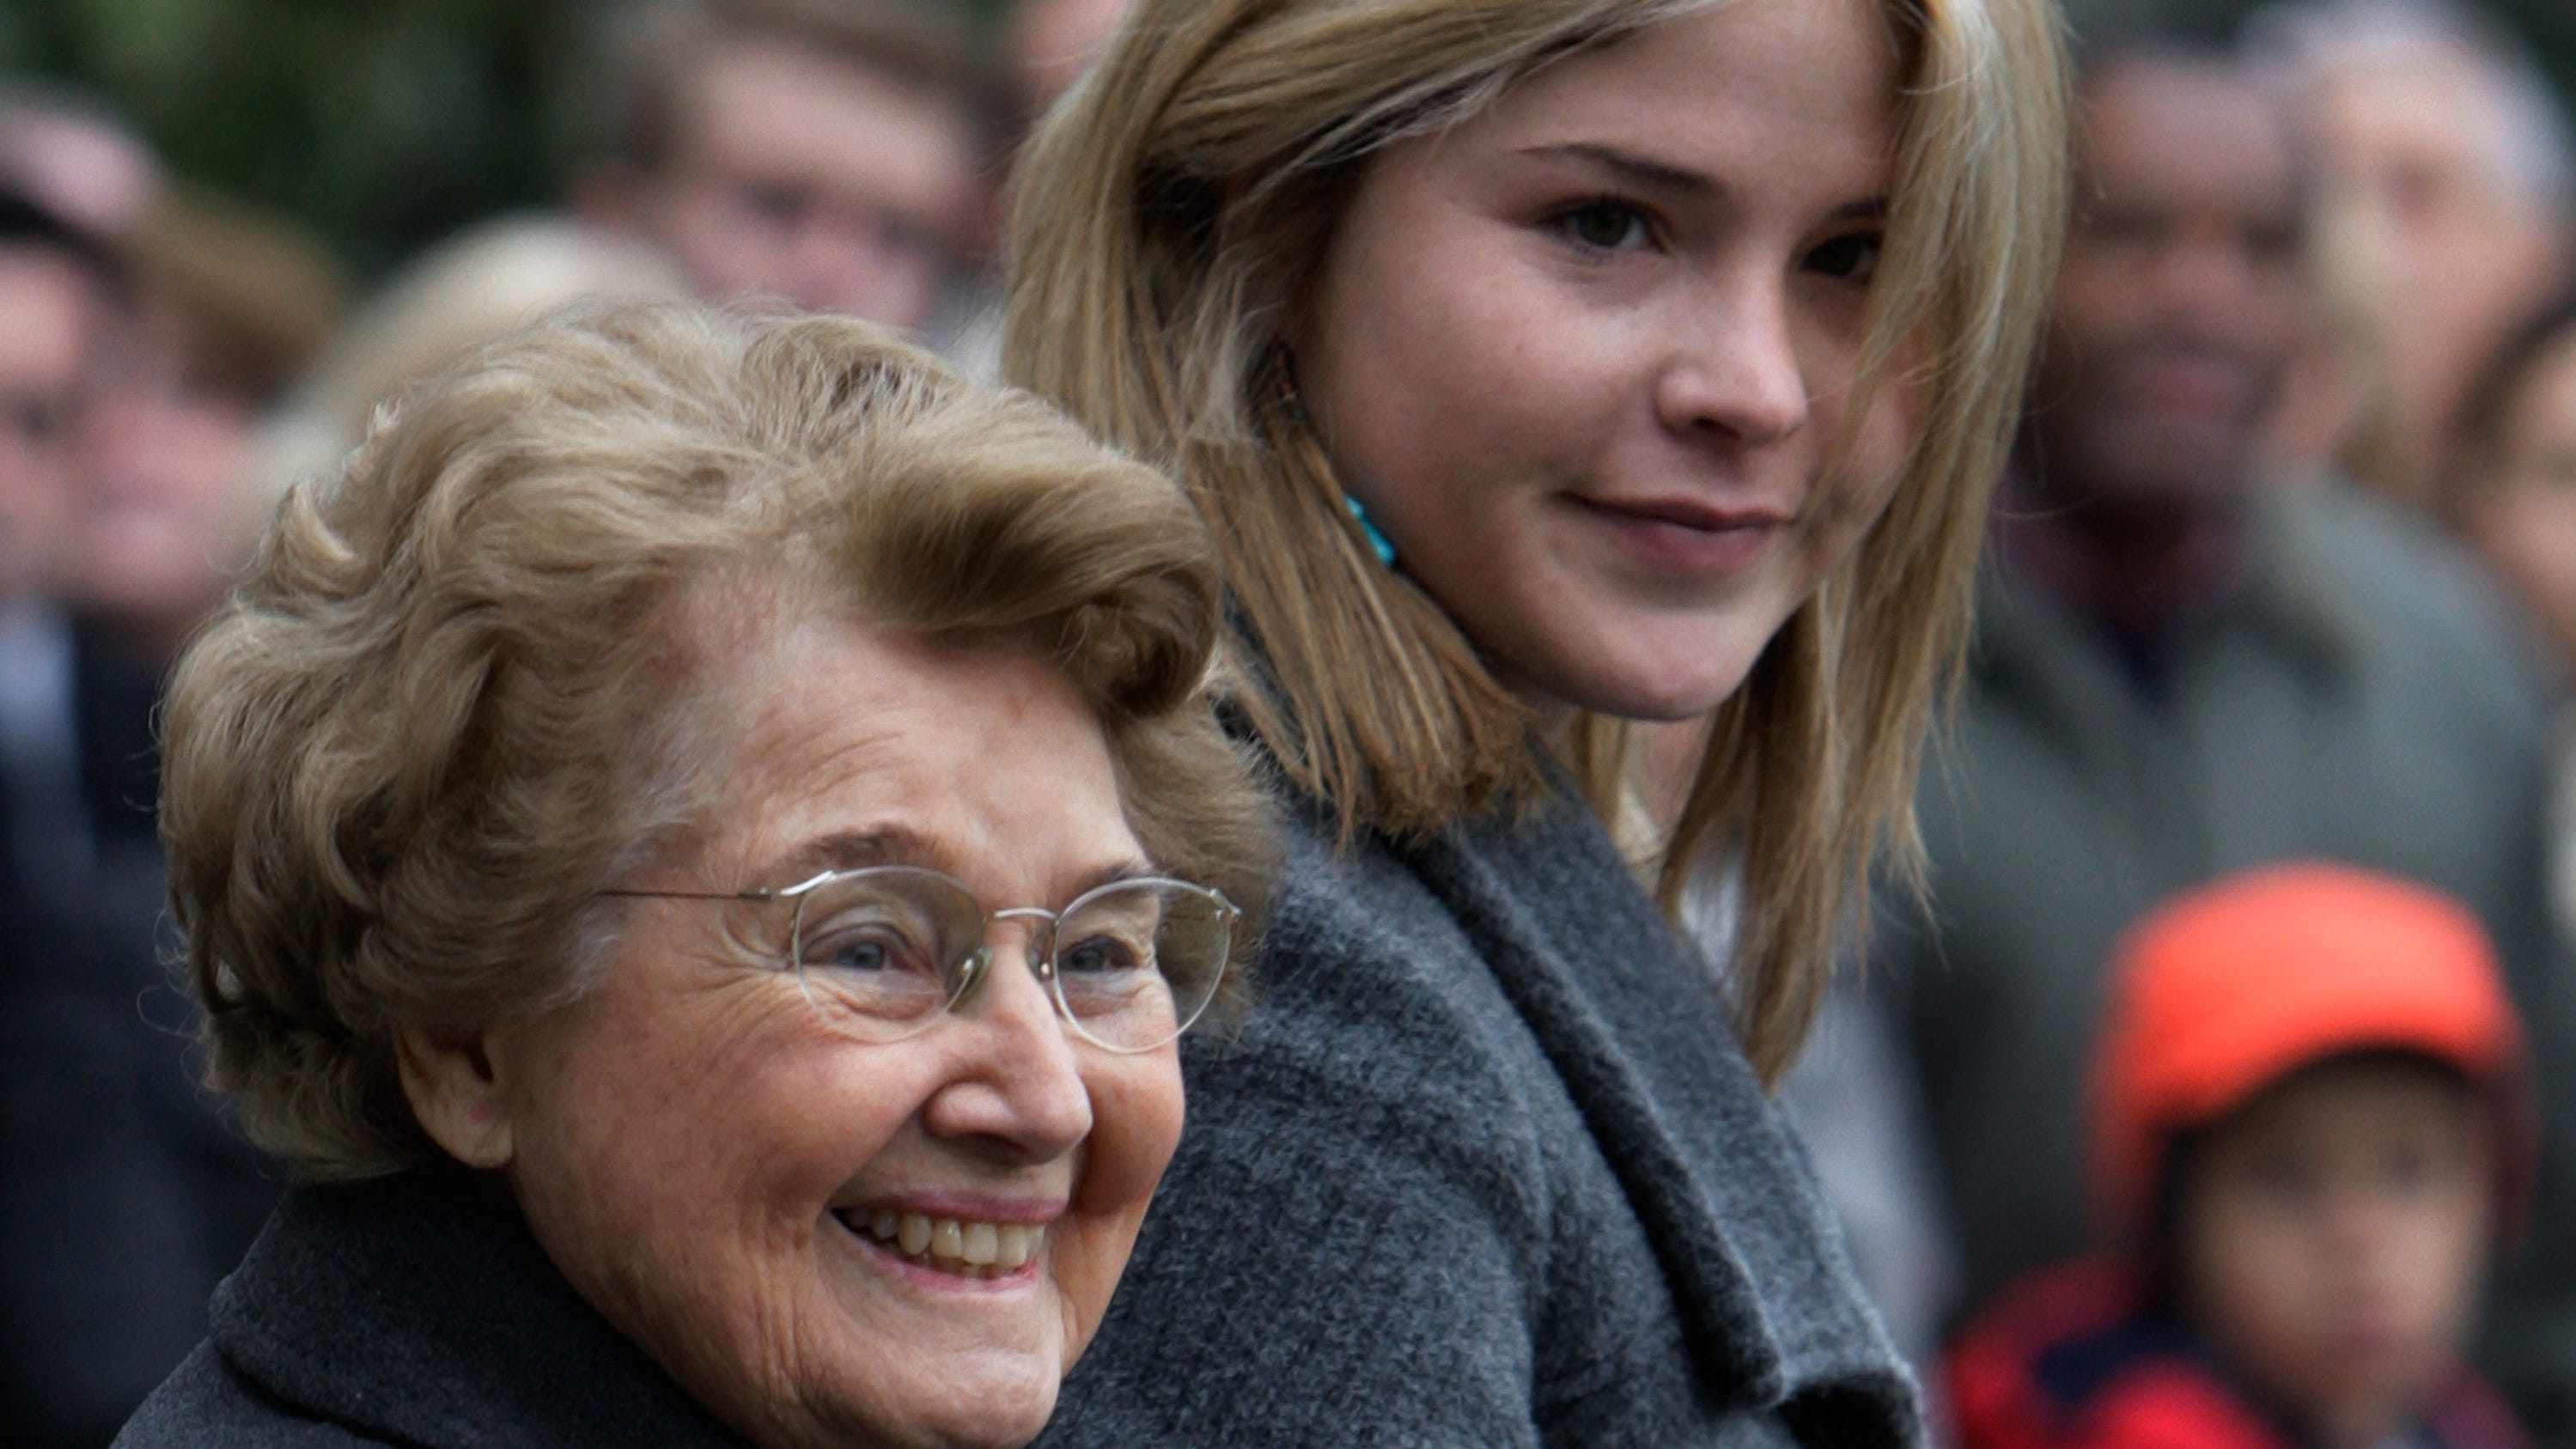 Laura Bush's mom dies at 99. Jenna Bush Hager pens tribute to her 'precious namesake'